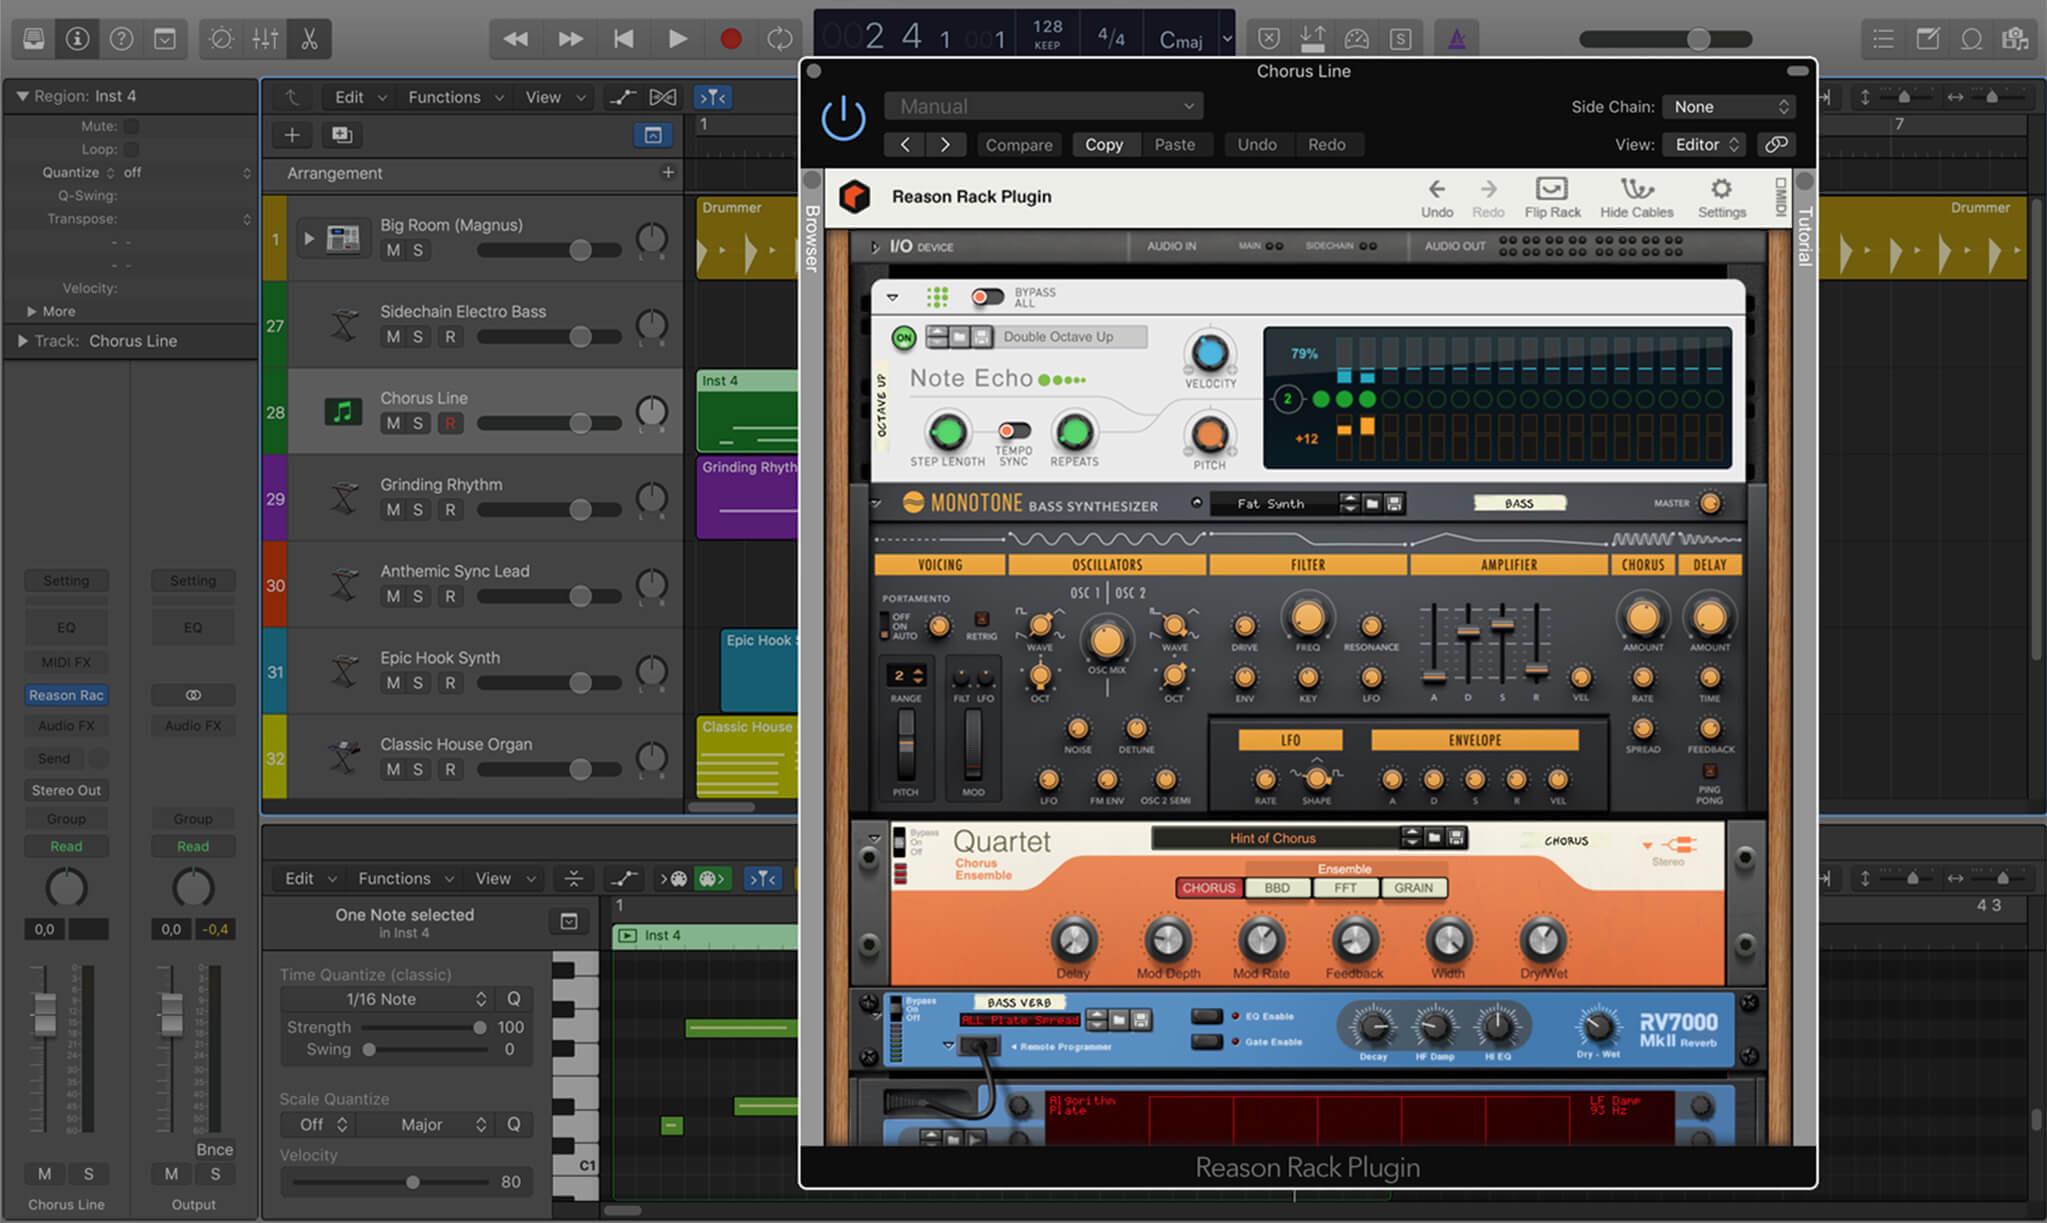 Reason Rack Plugin for Logic Pro X